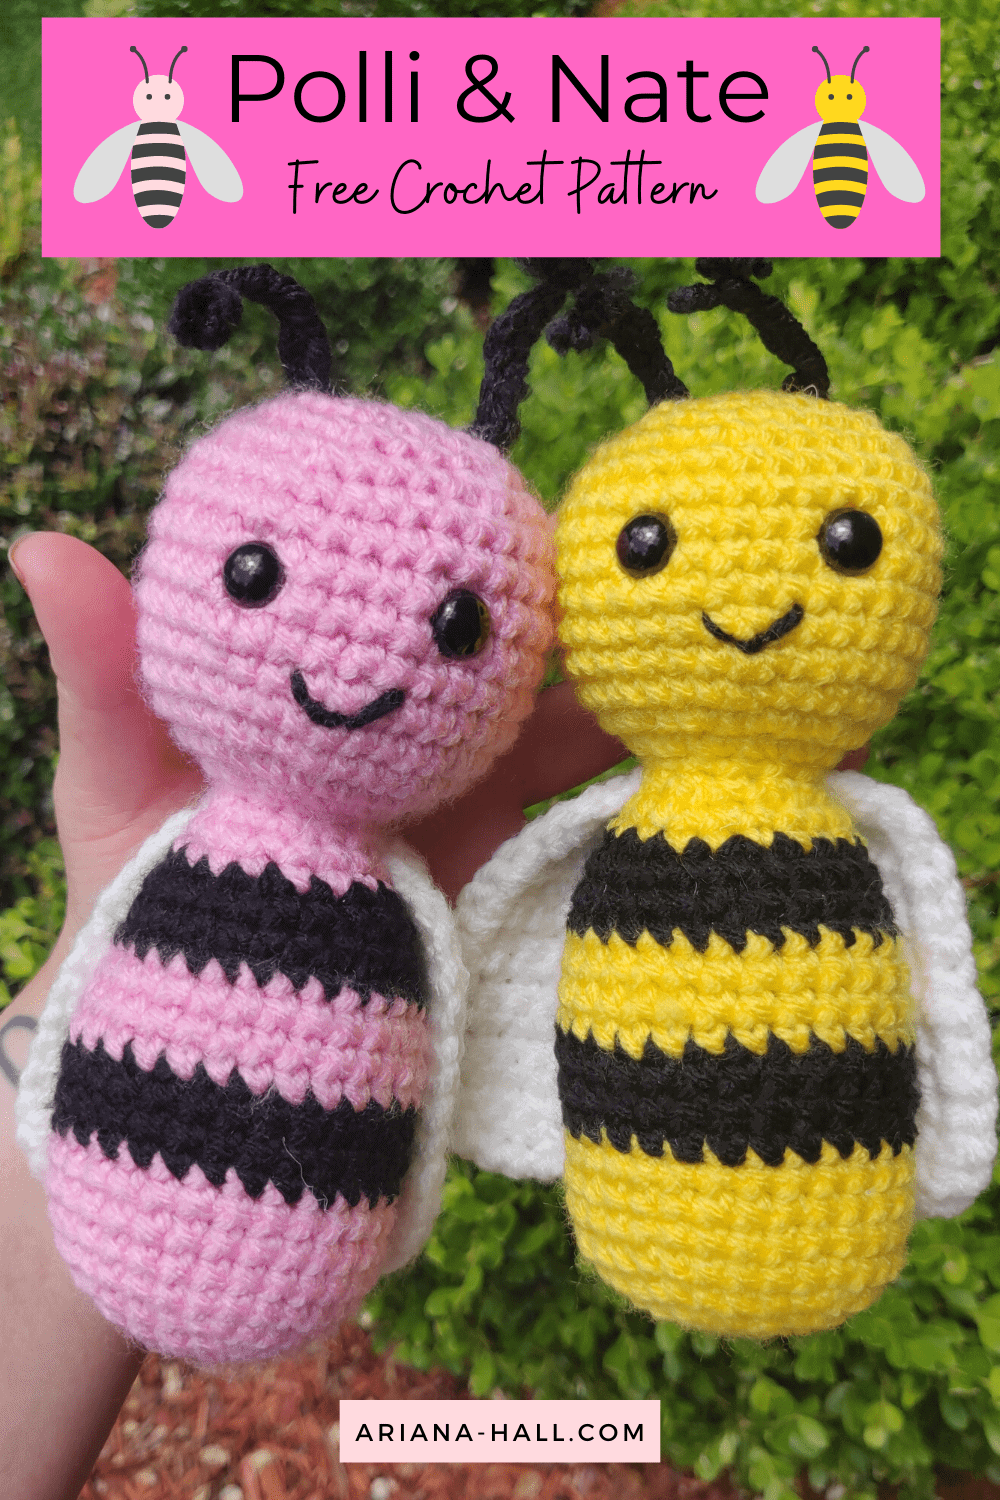 pink and yellow crochet bumble bees.